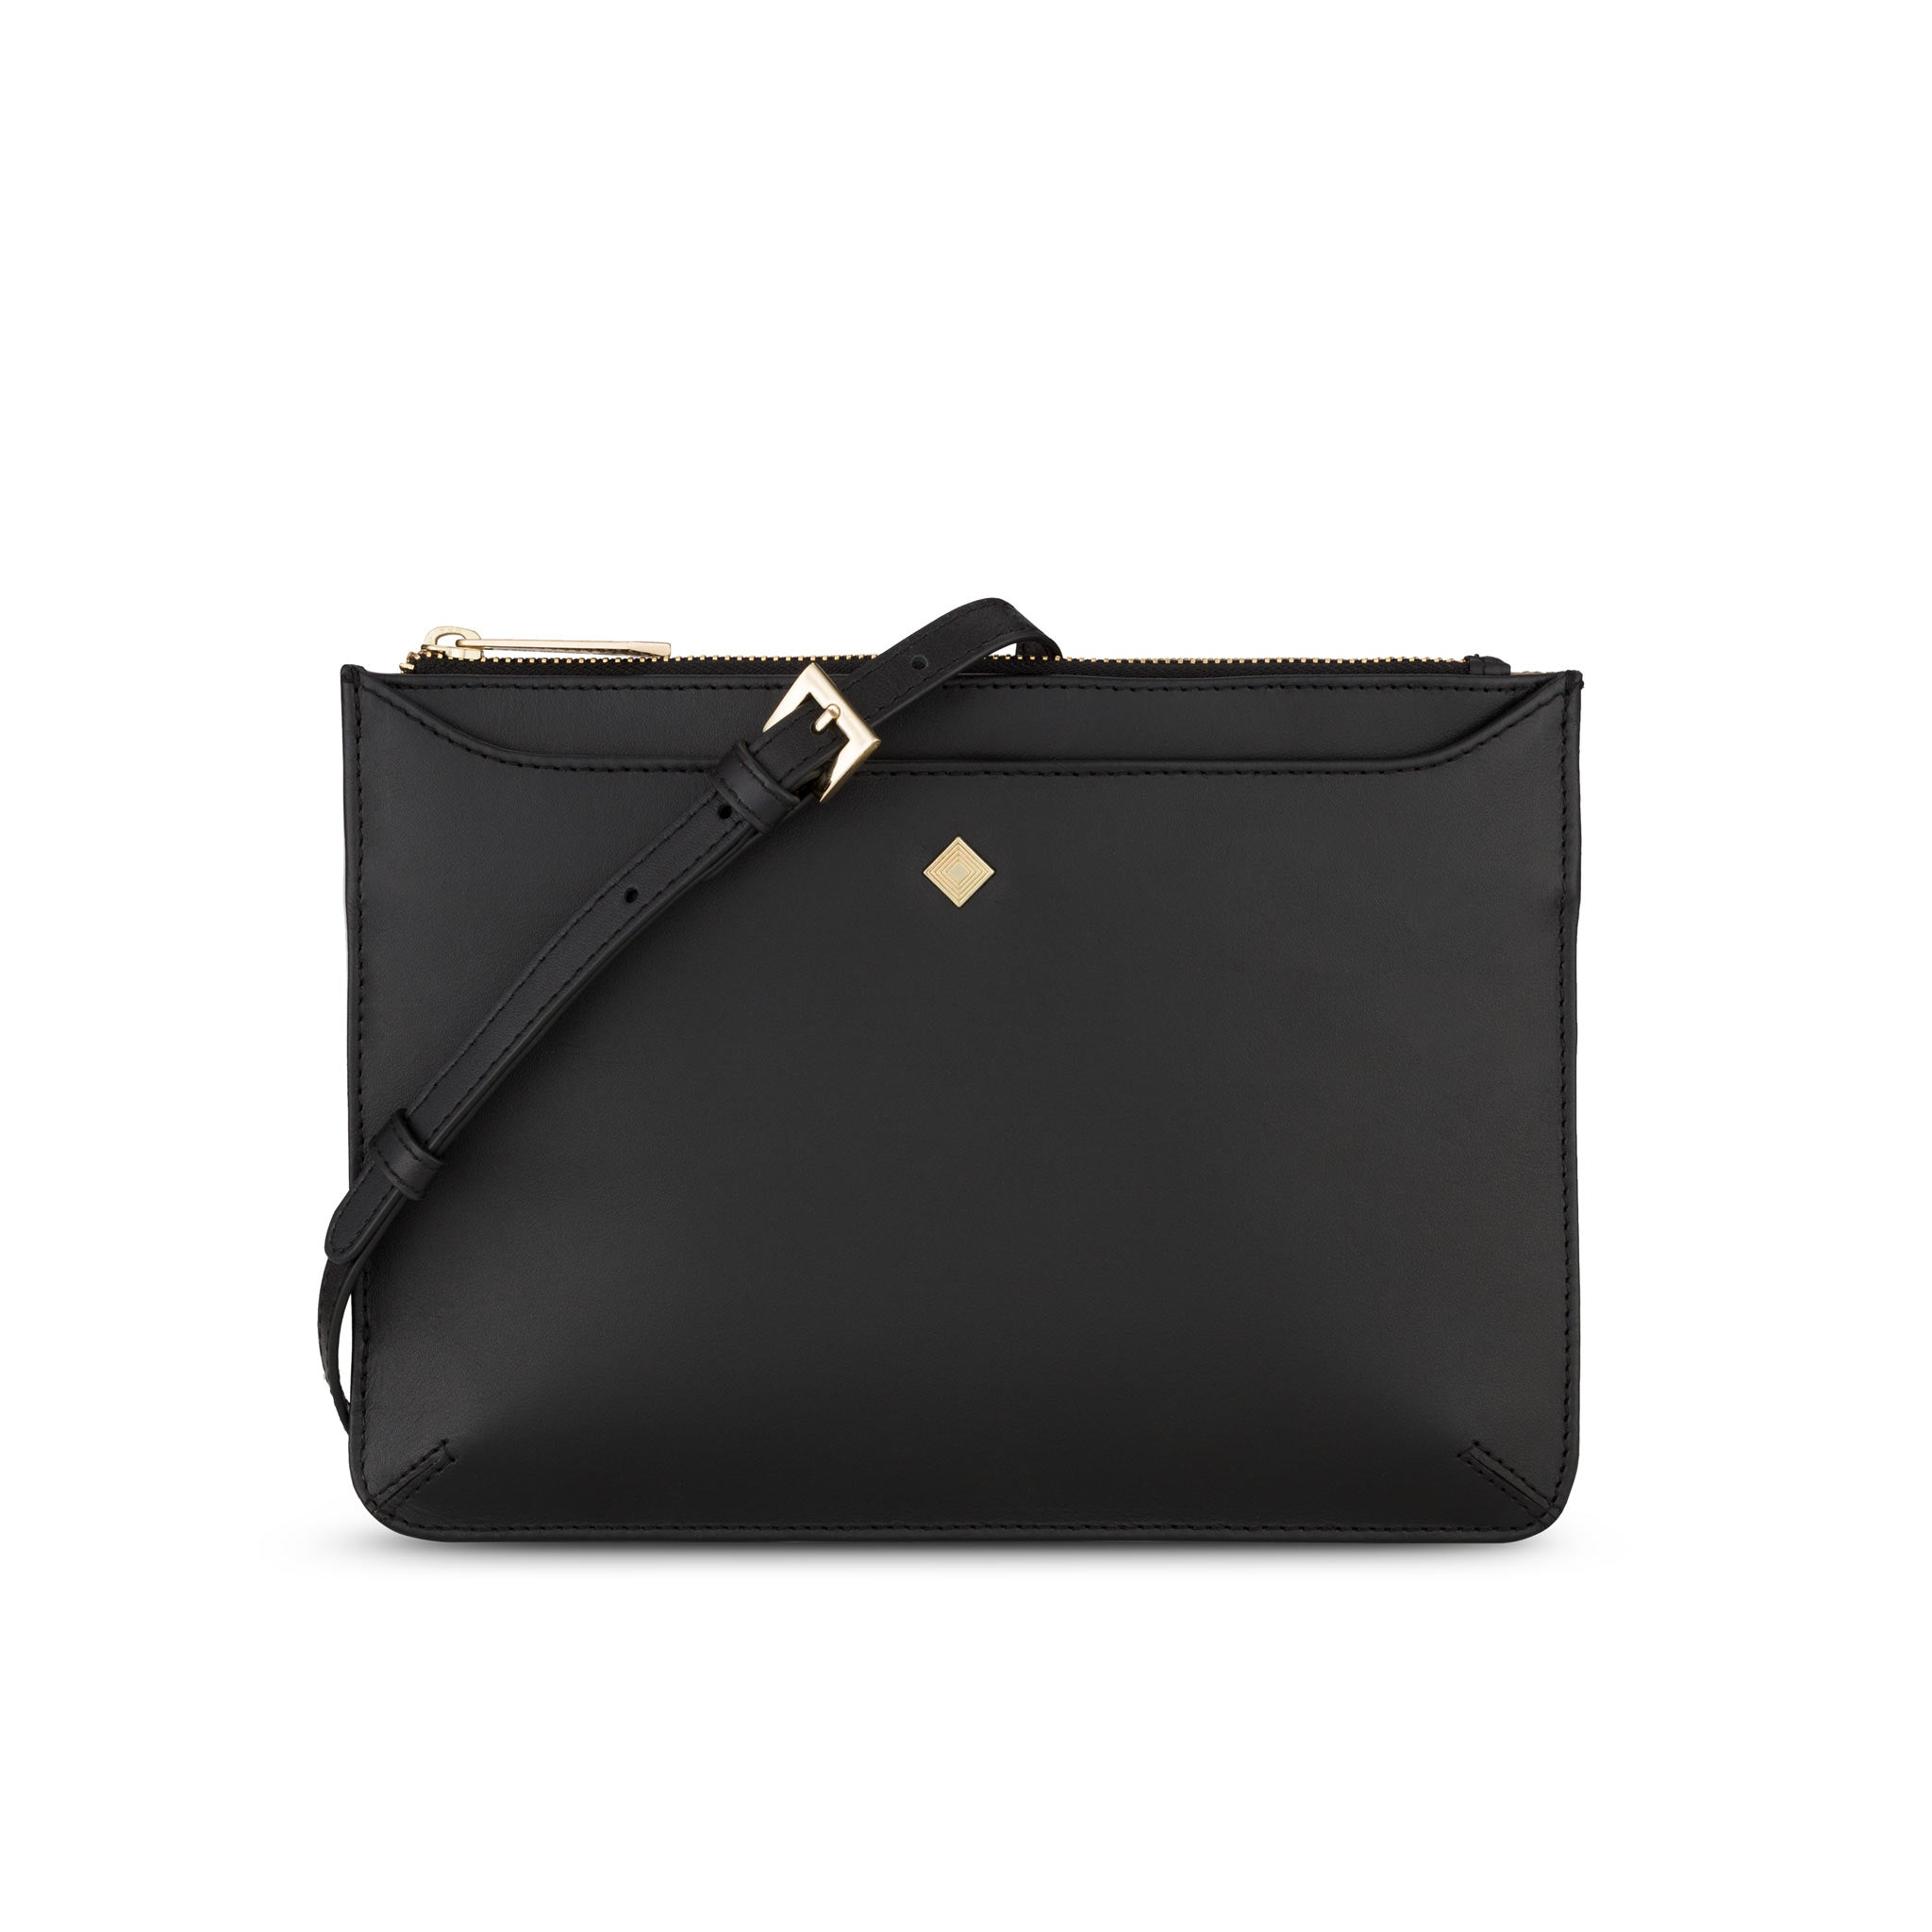 Maxi Sakura Pouch - Jennifer Hamley luxury leather handbags and laptop bag for working women